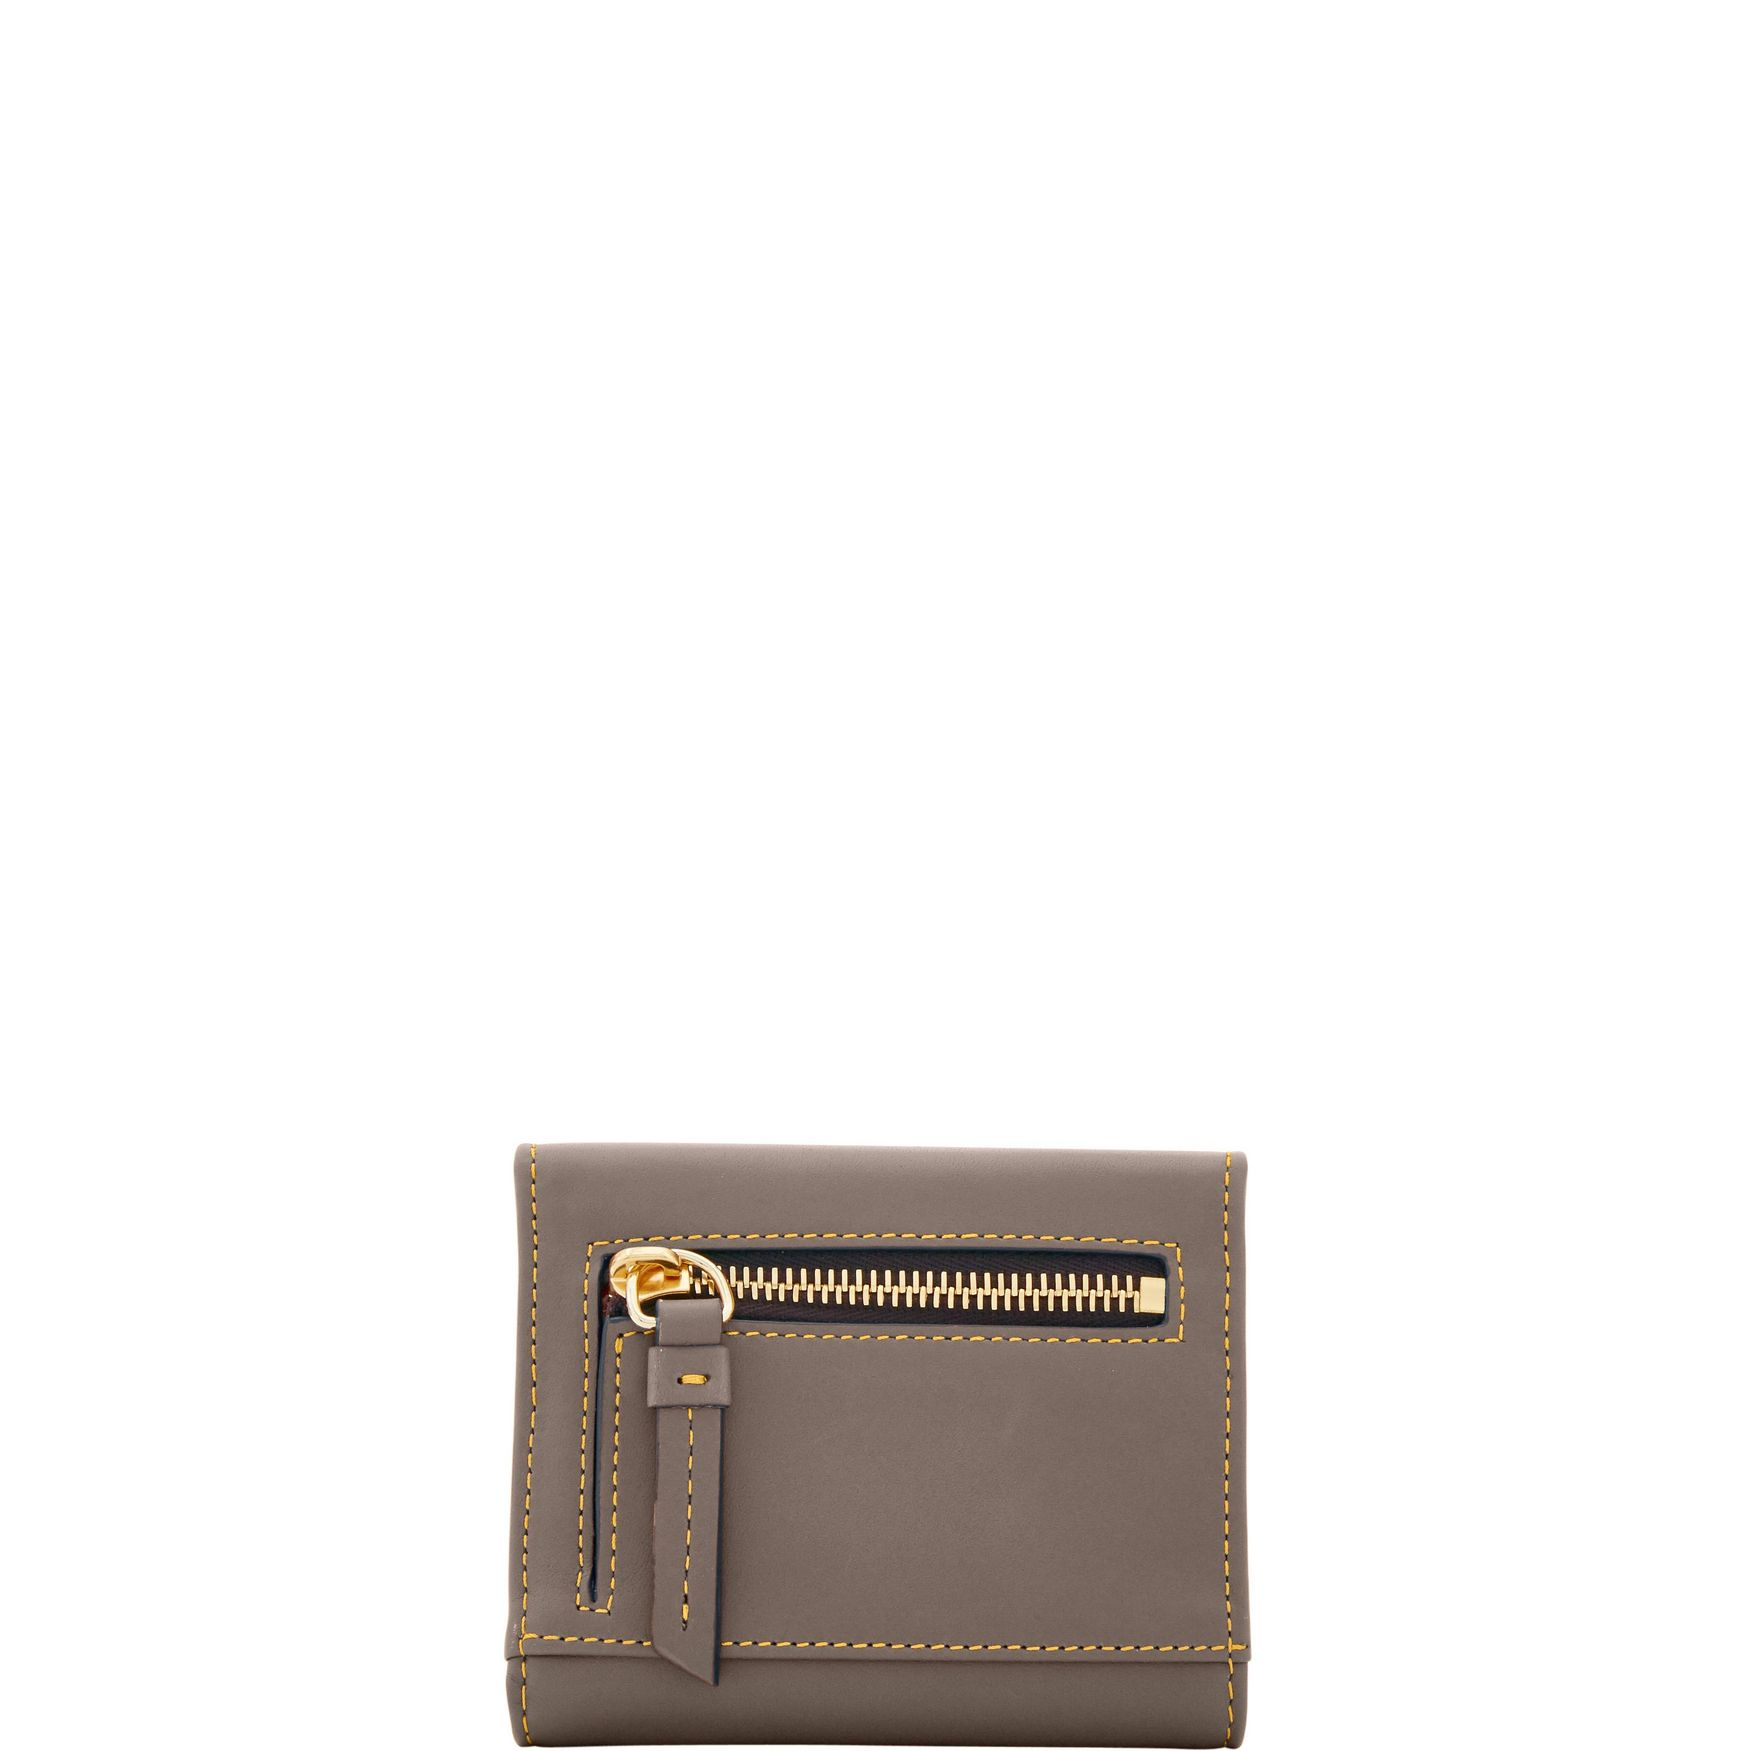 Dooney-amp-Bourke-Emerson-Small-Flap-Wallet thumbnail 38